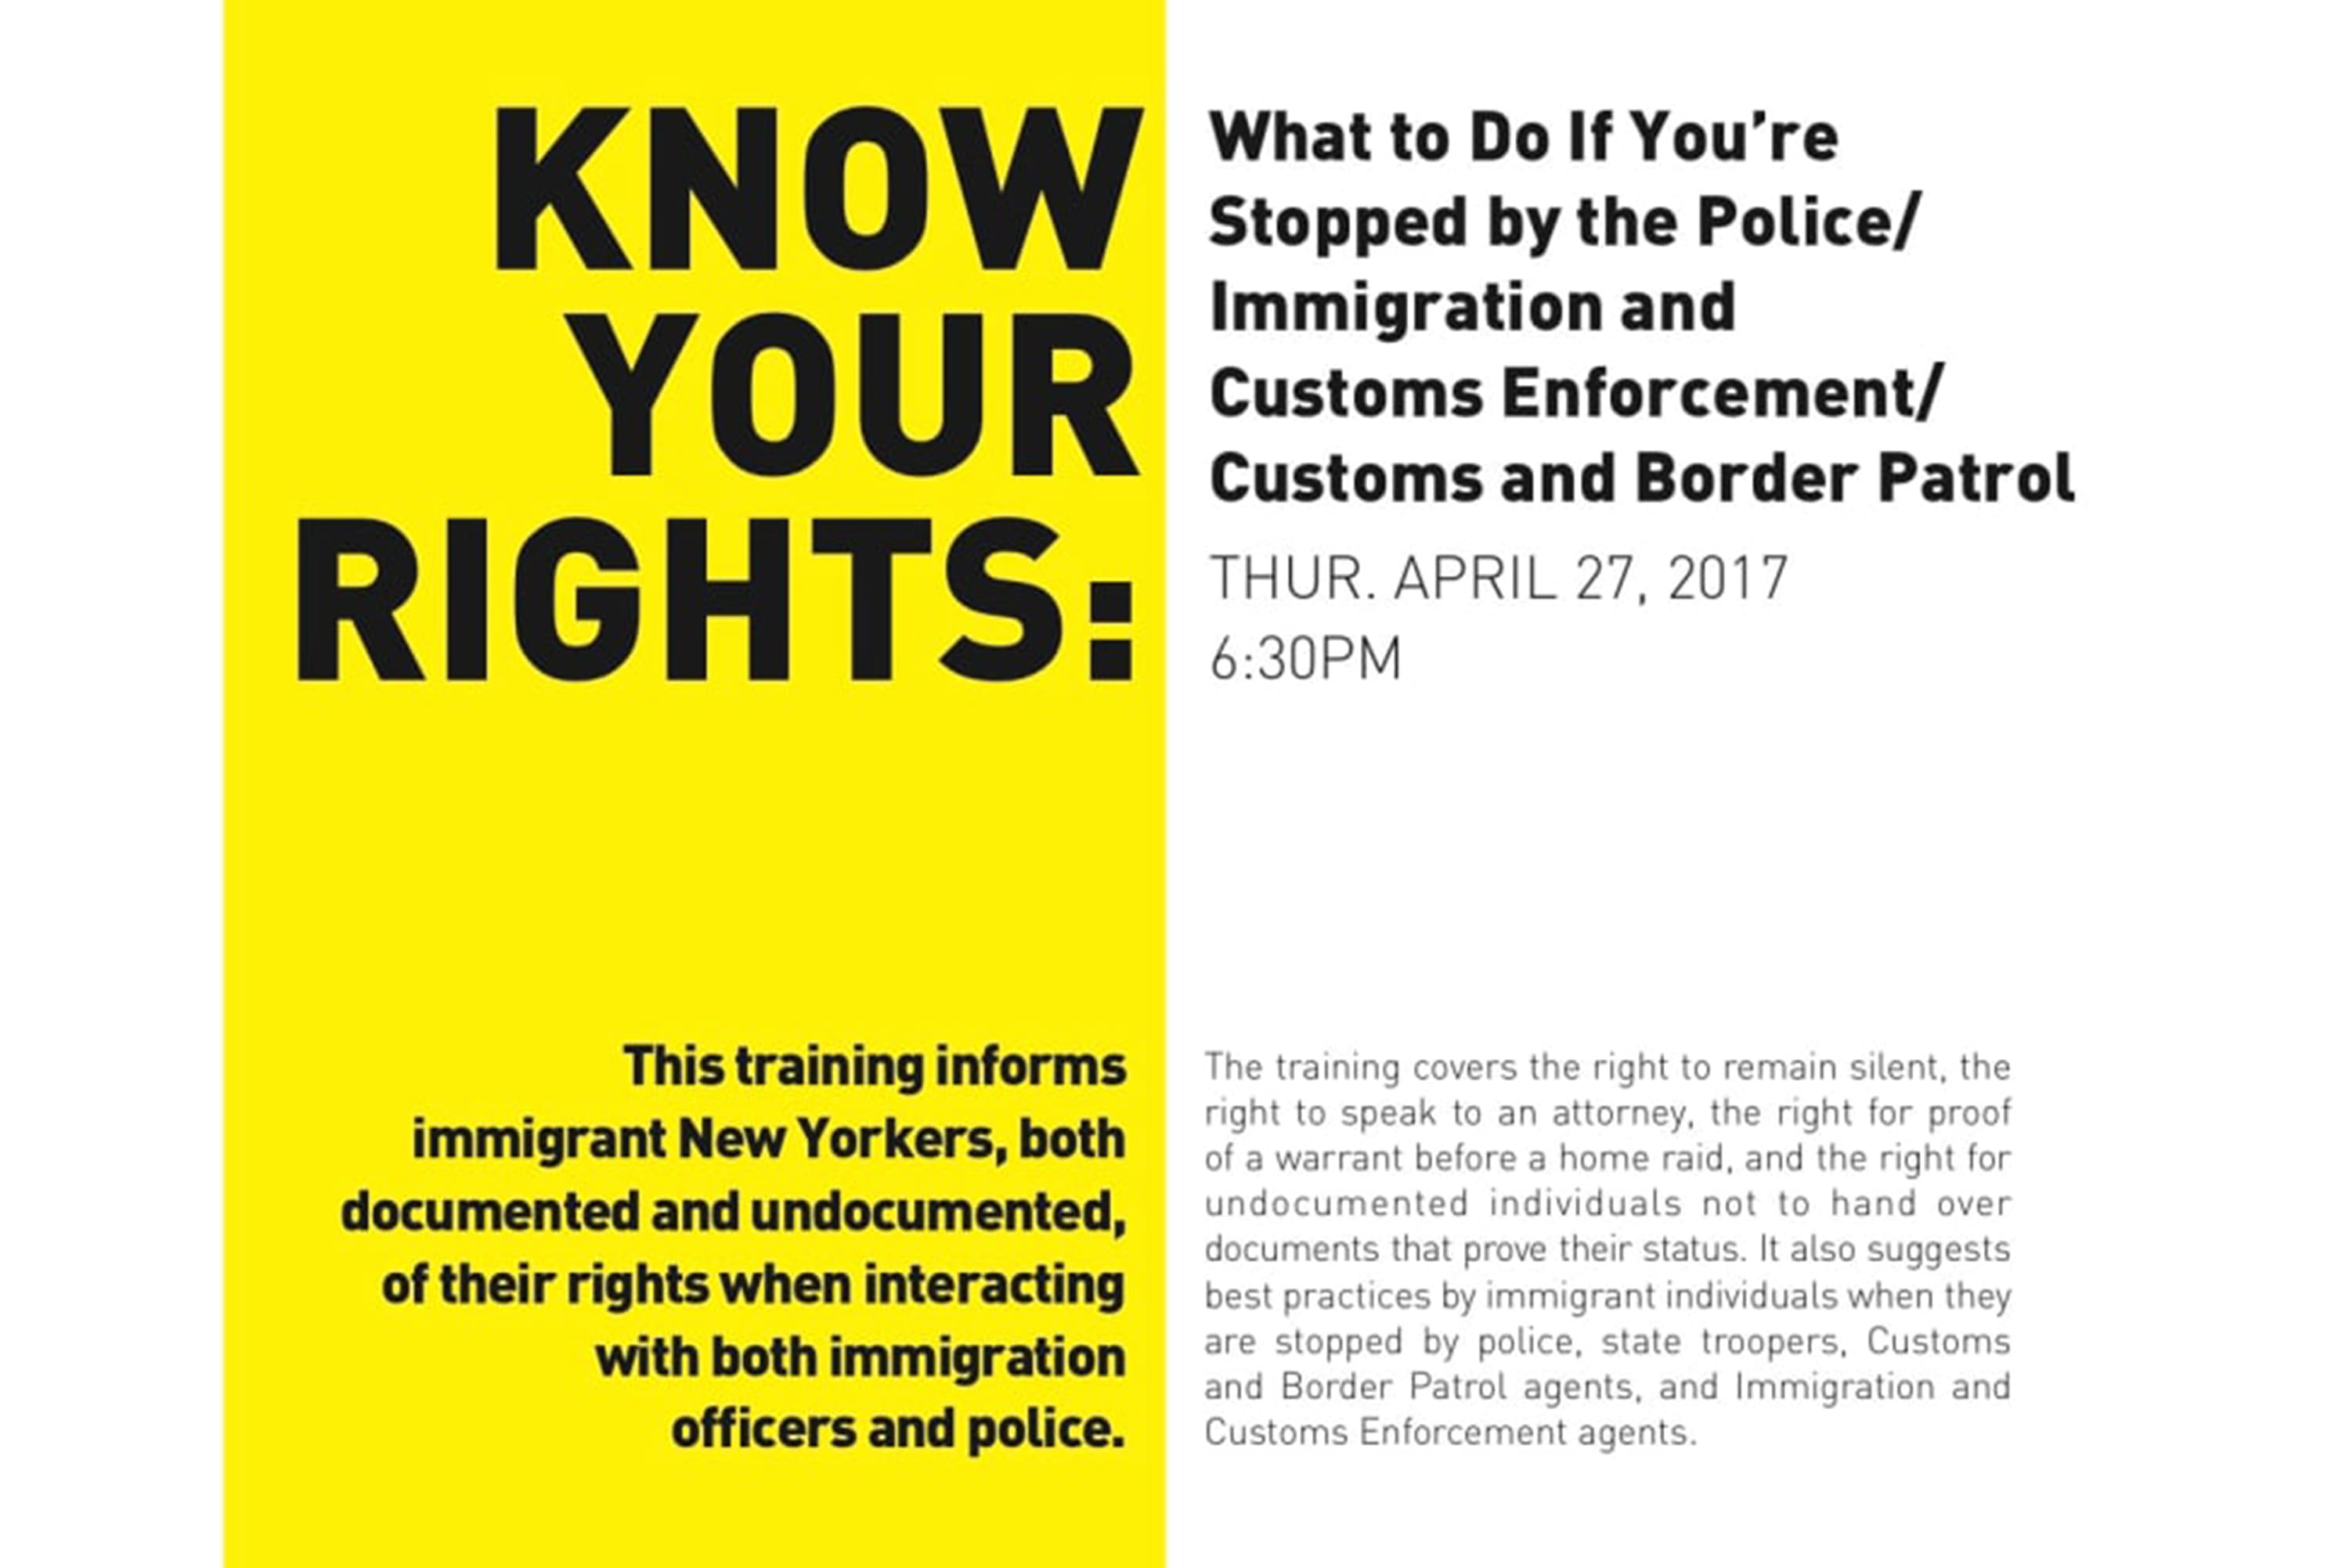 New York Civil Liberties Union: Know Your Rights Training